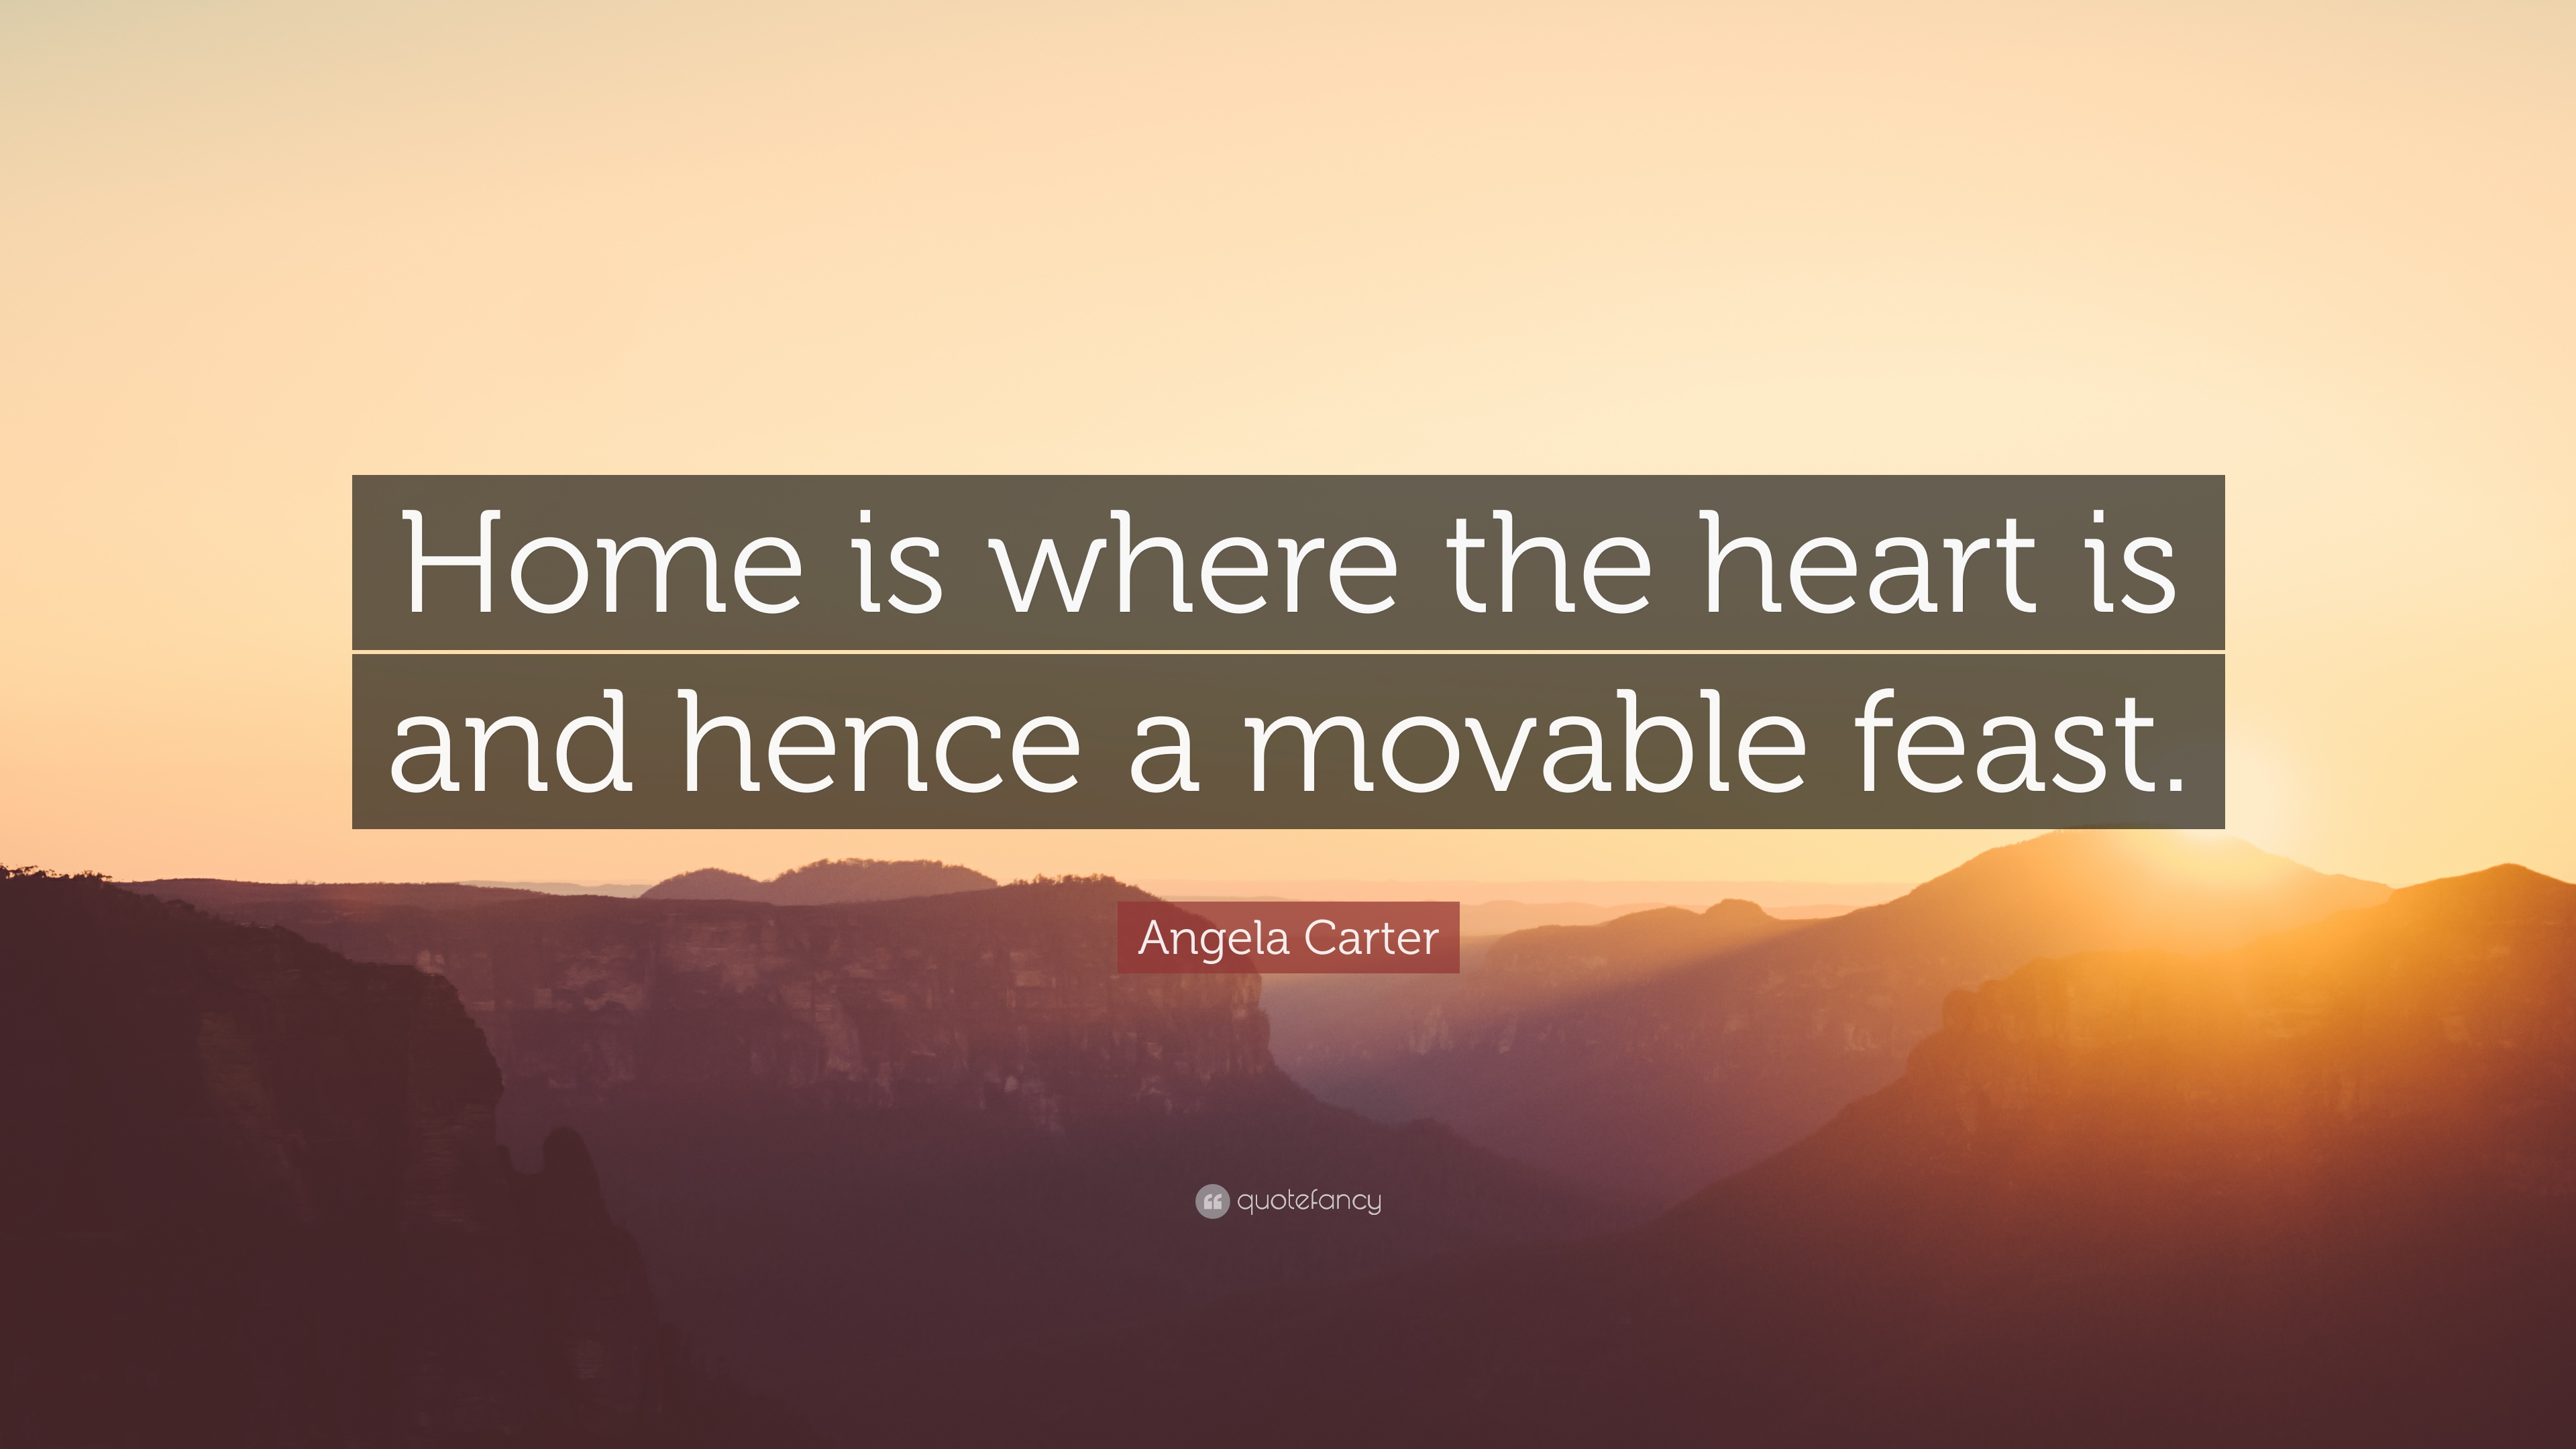 angela carter quote home is where the heart is and hence